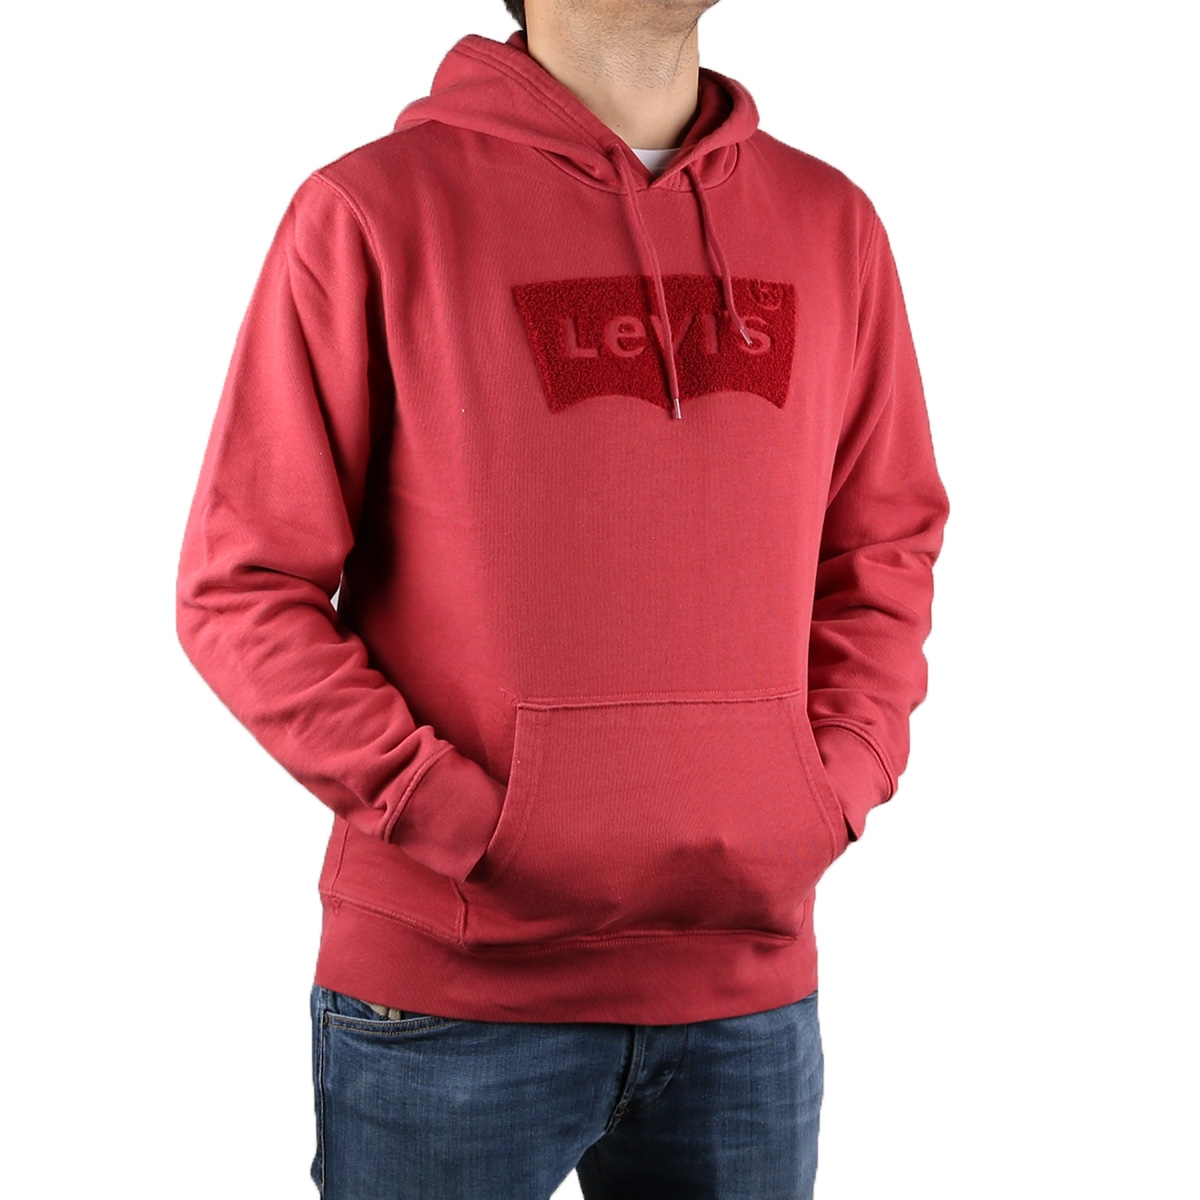 Levis Sudadera The Graphic Hoodie Red Rojo Hombre